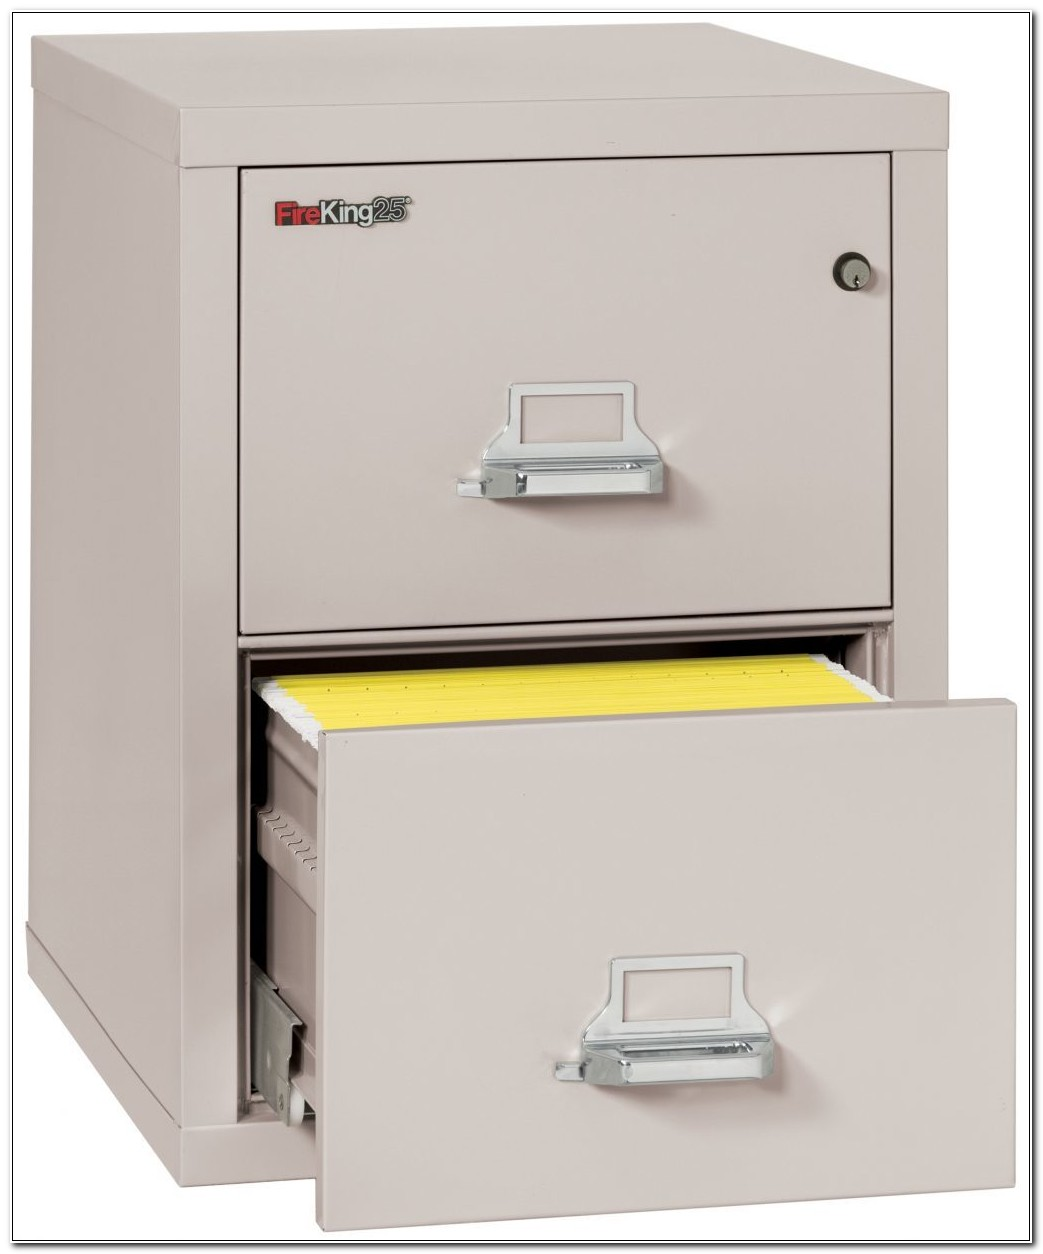 Fire King File Cabinets Accessories